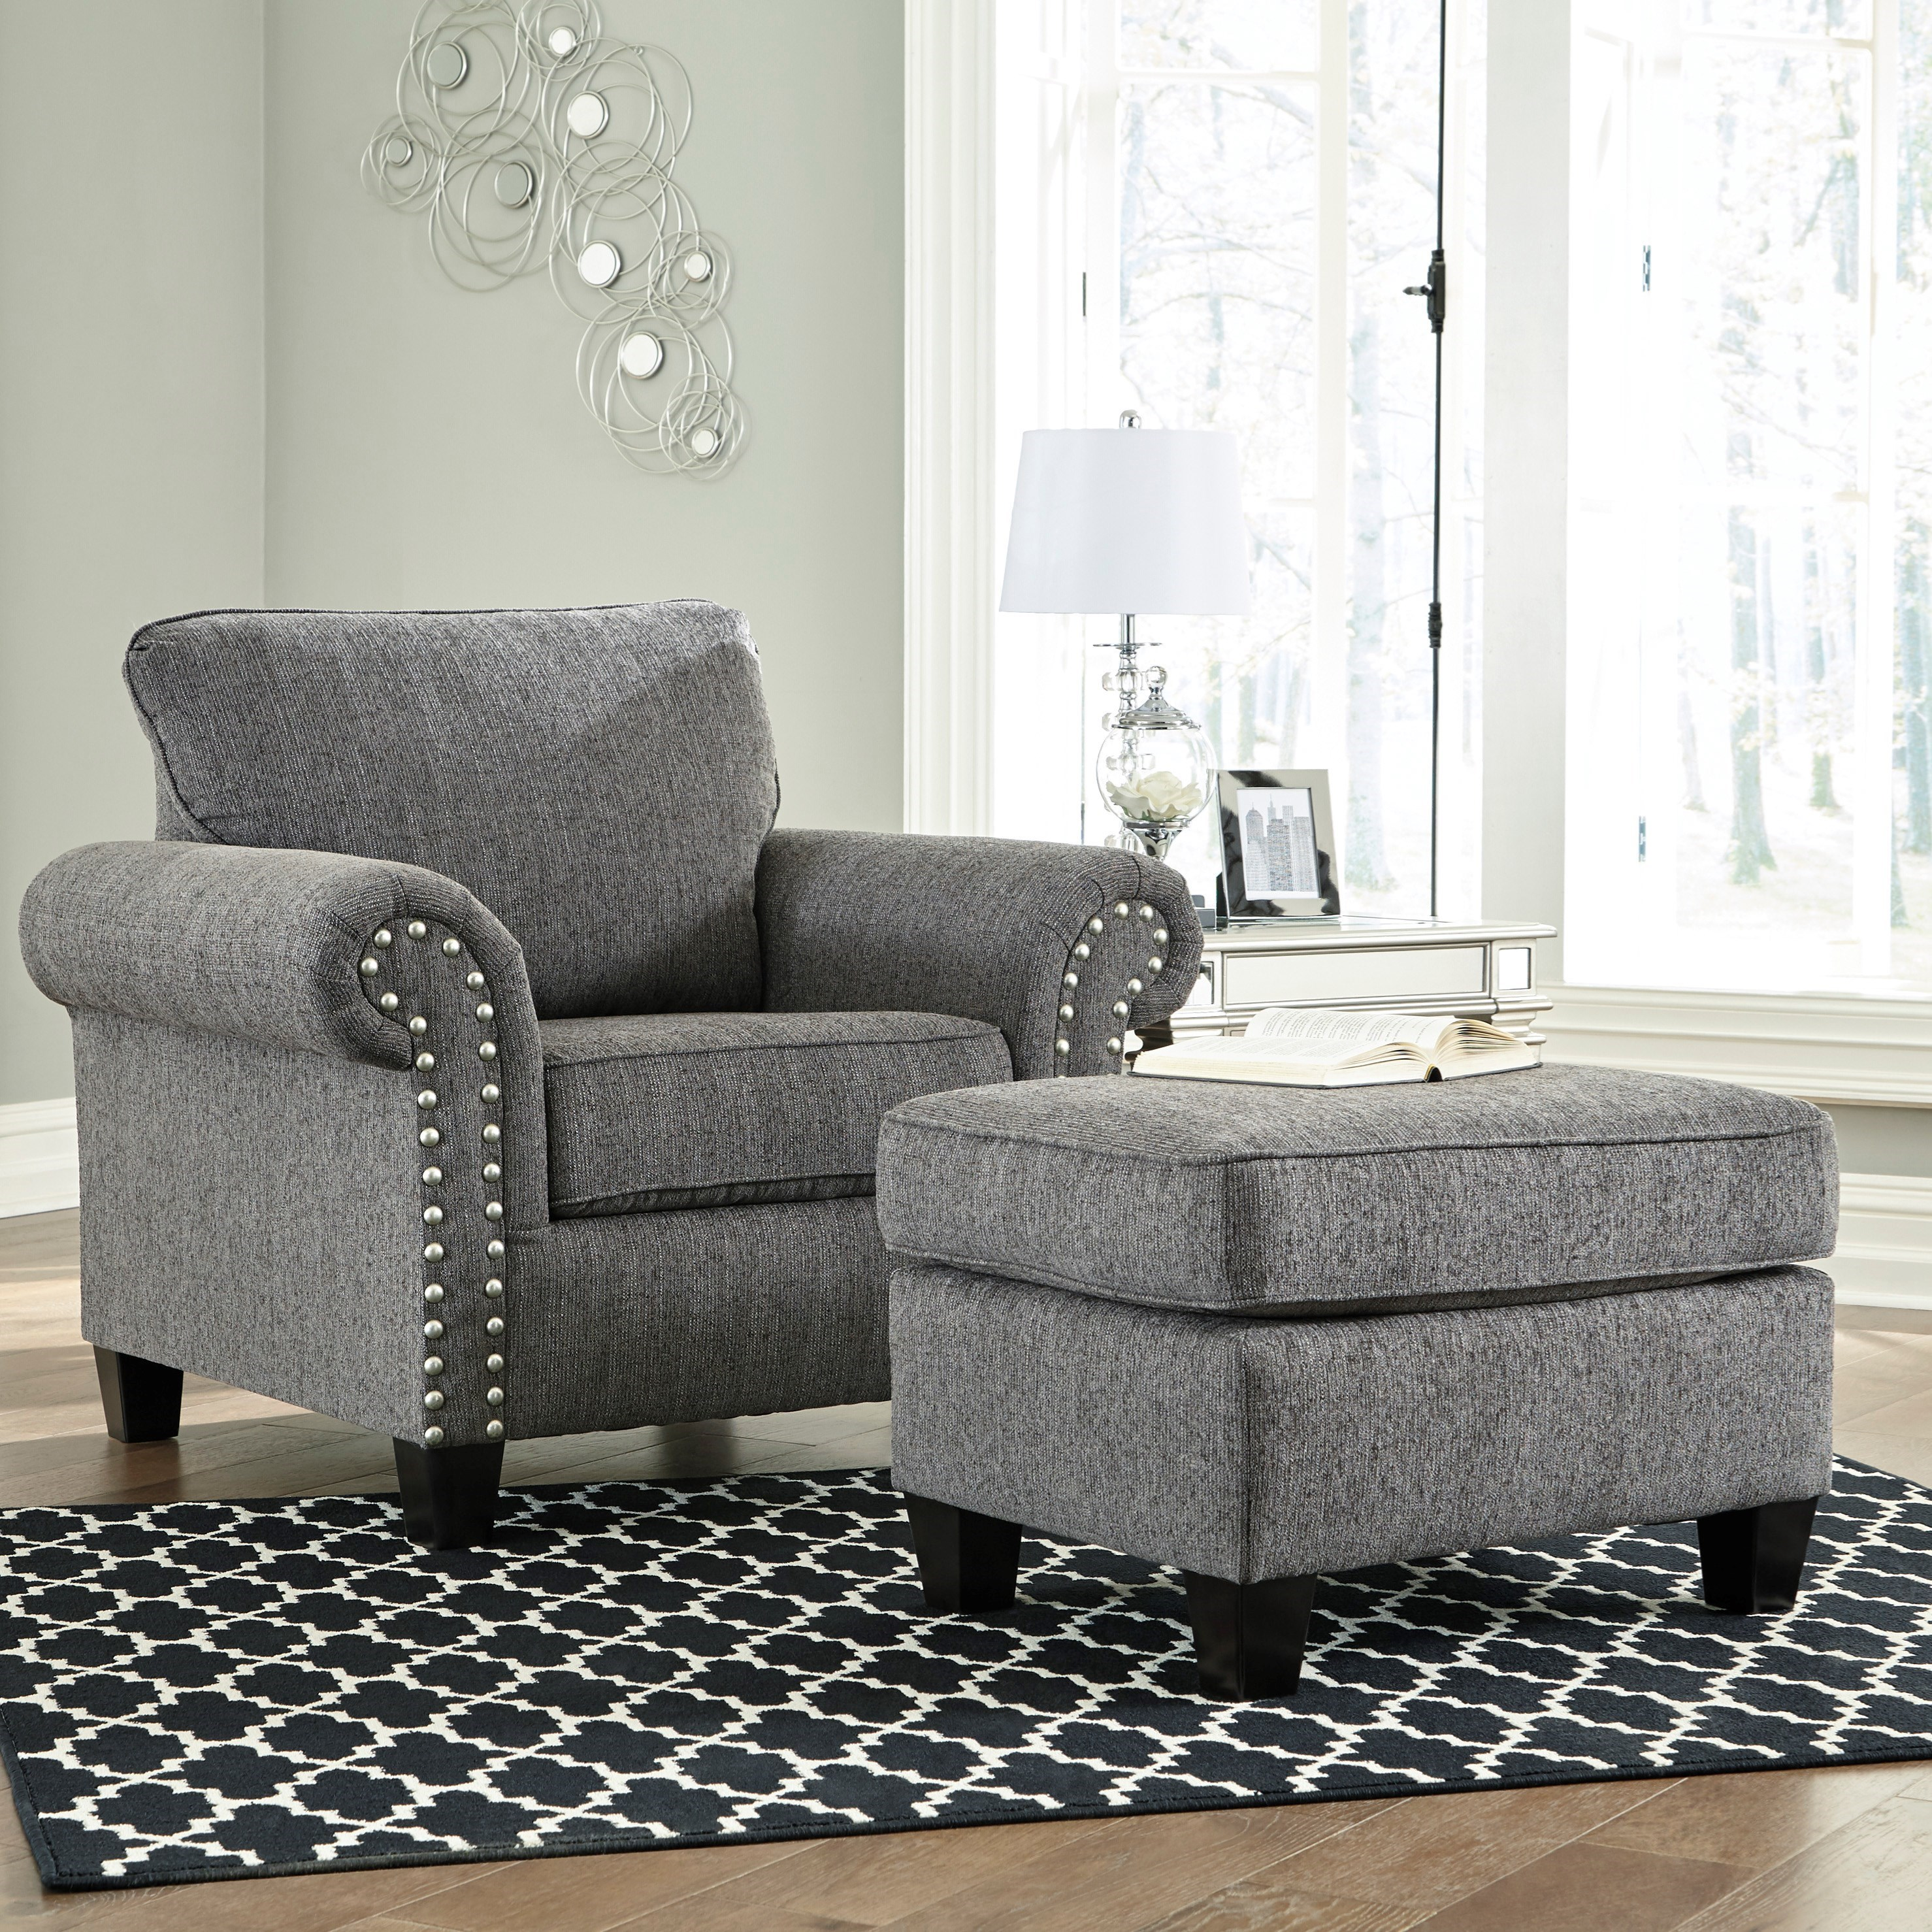 Agleno Chair and Ottoman by Benchcraft at Value City Furniture